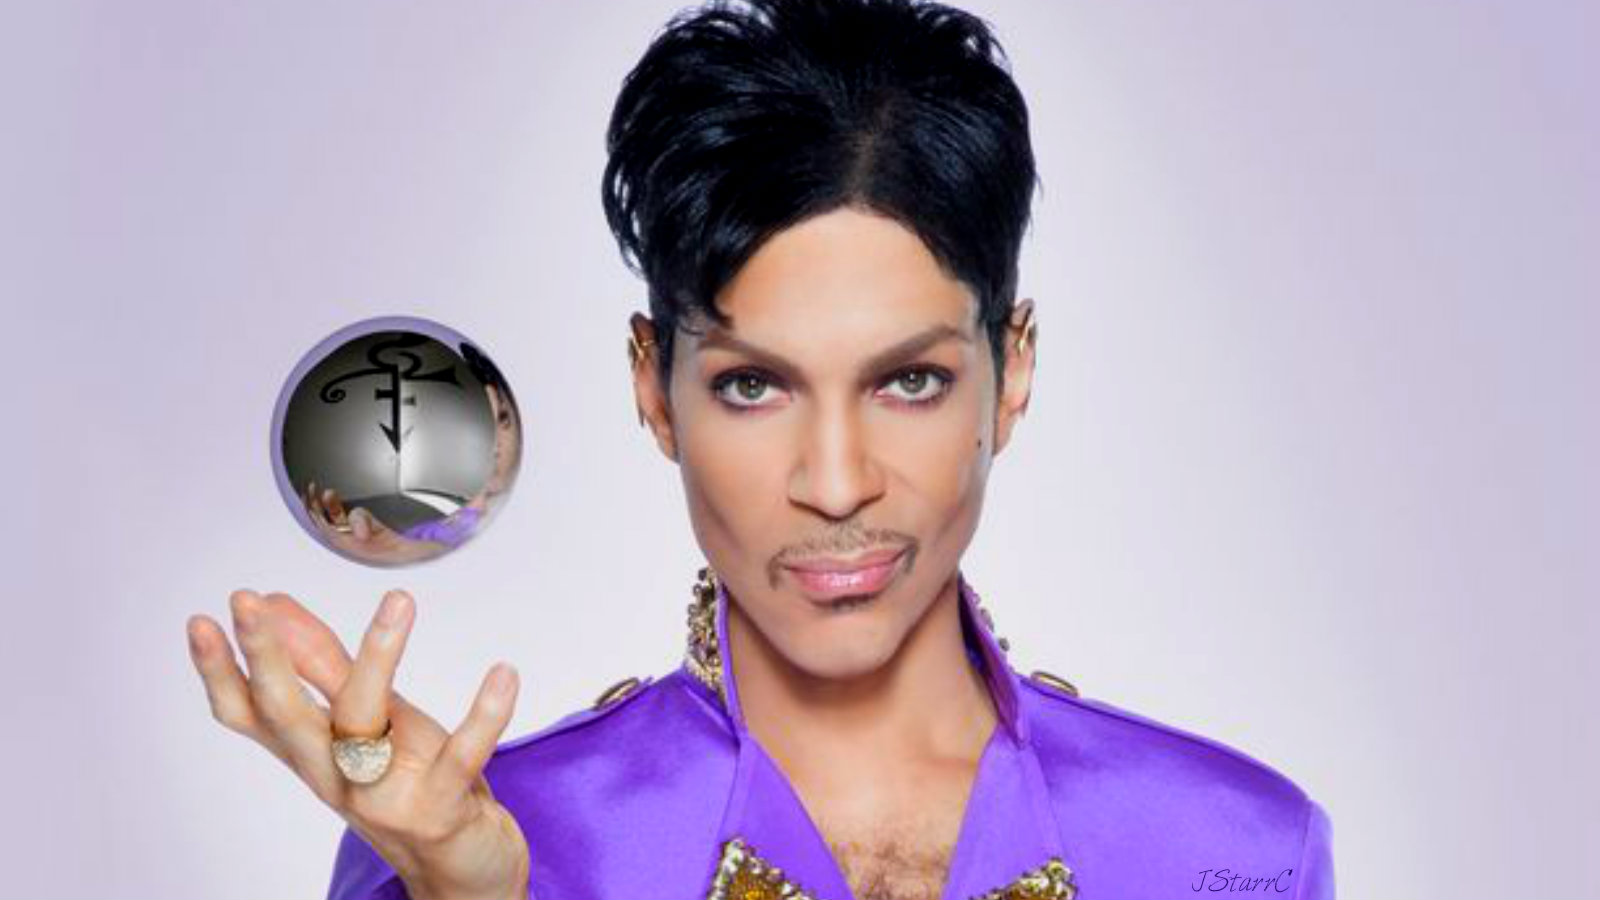 Prince Images Prince Hd Wallpaper And Background Photos 39536339